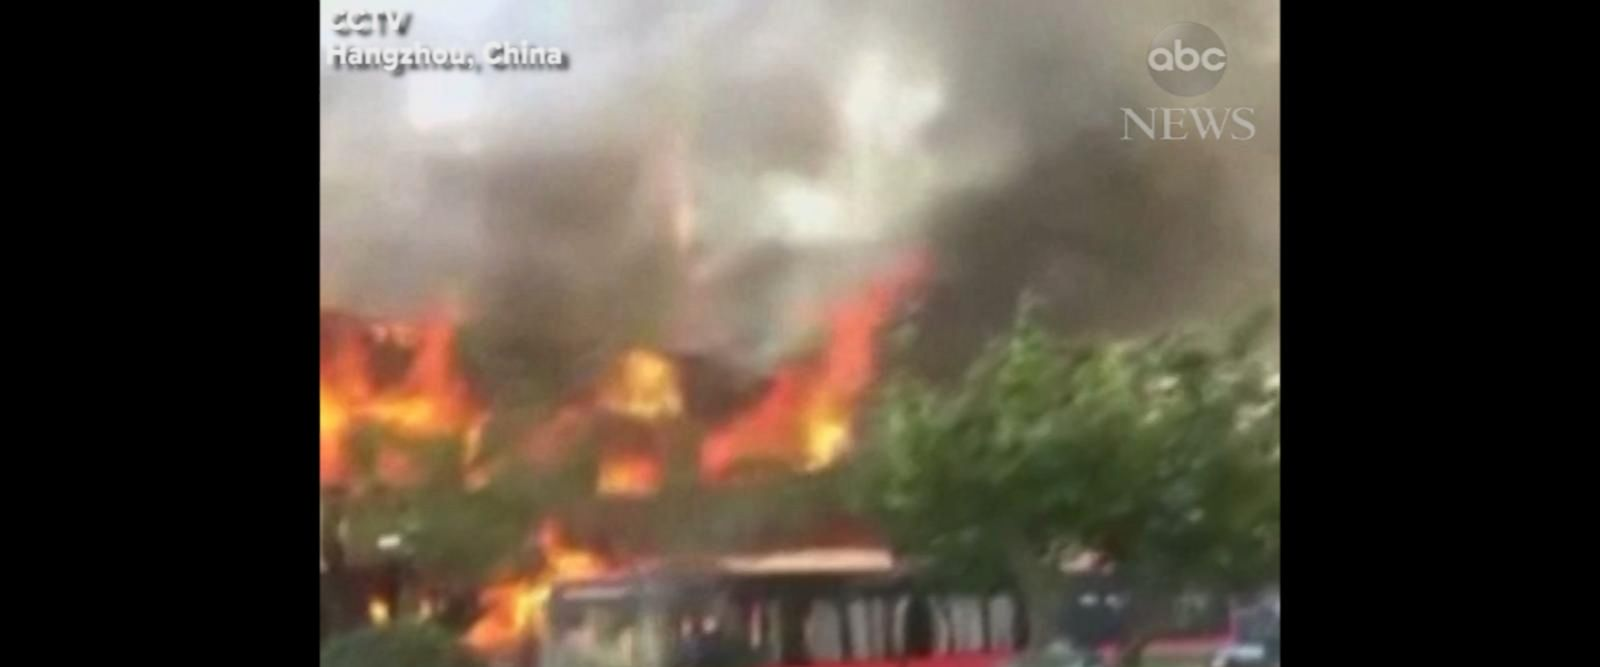 VIDEO: Suspected gas explosion kills 2, injures 55 in eastern China